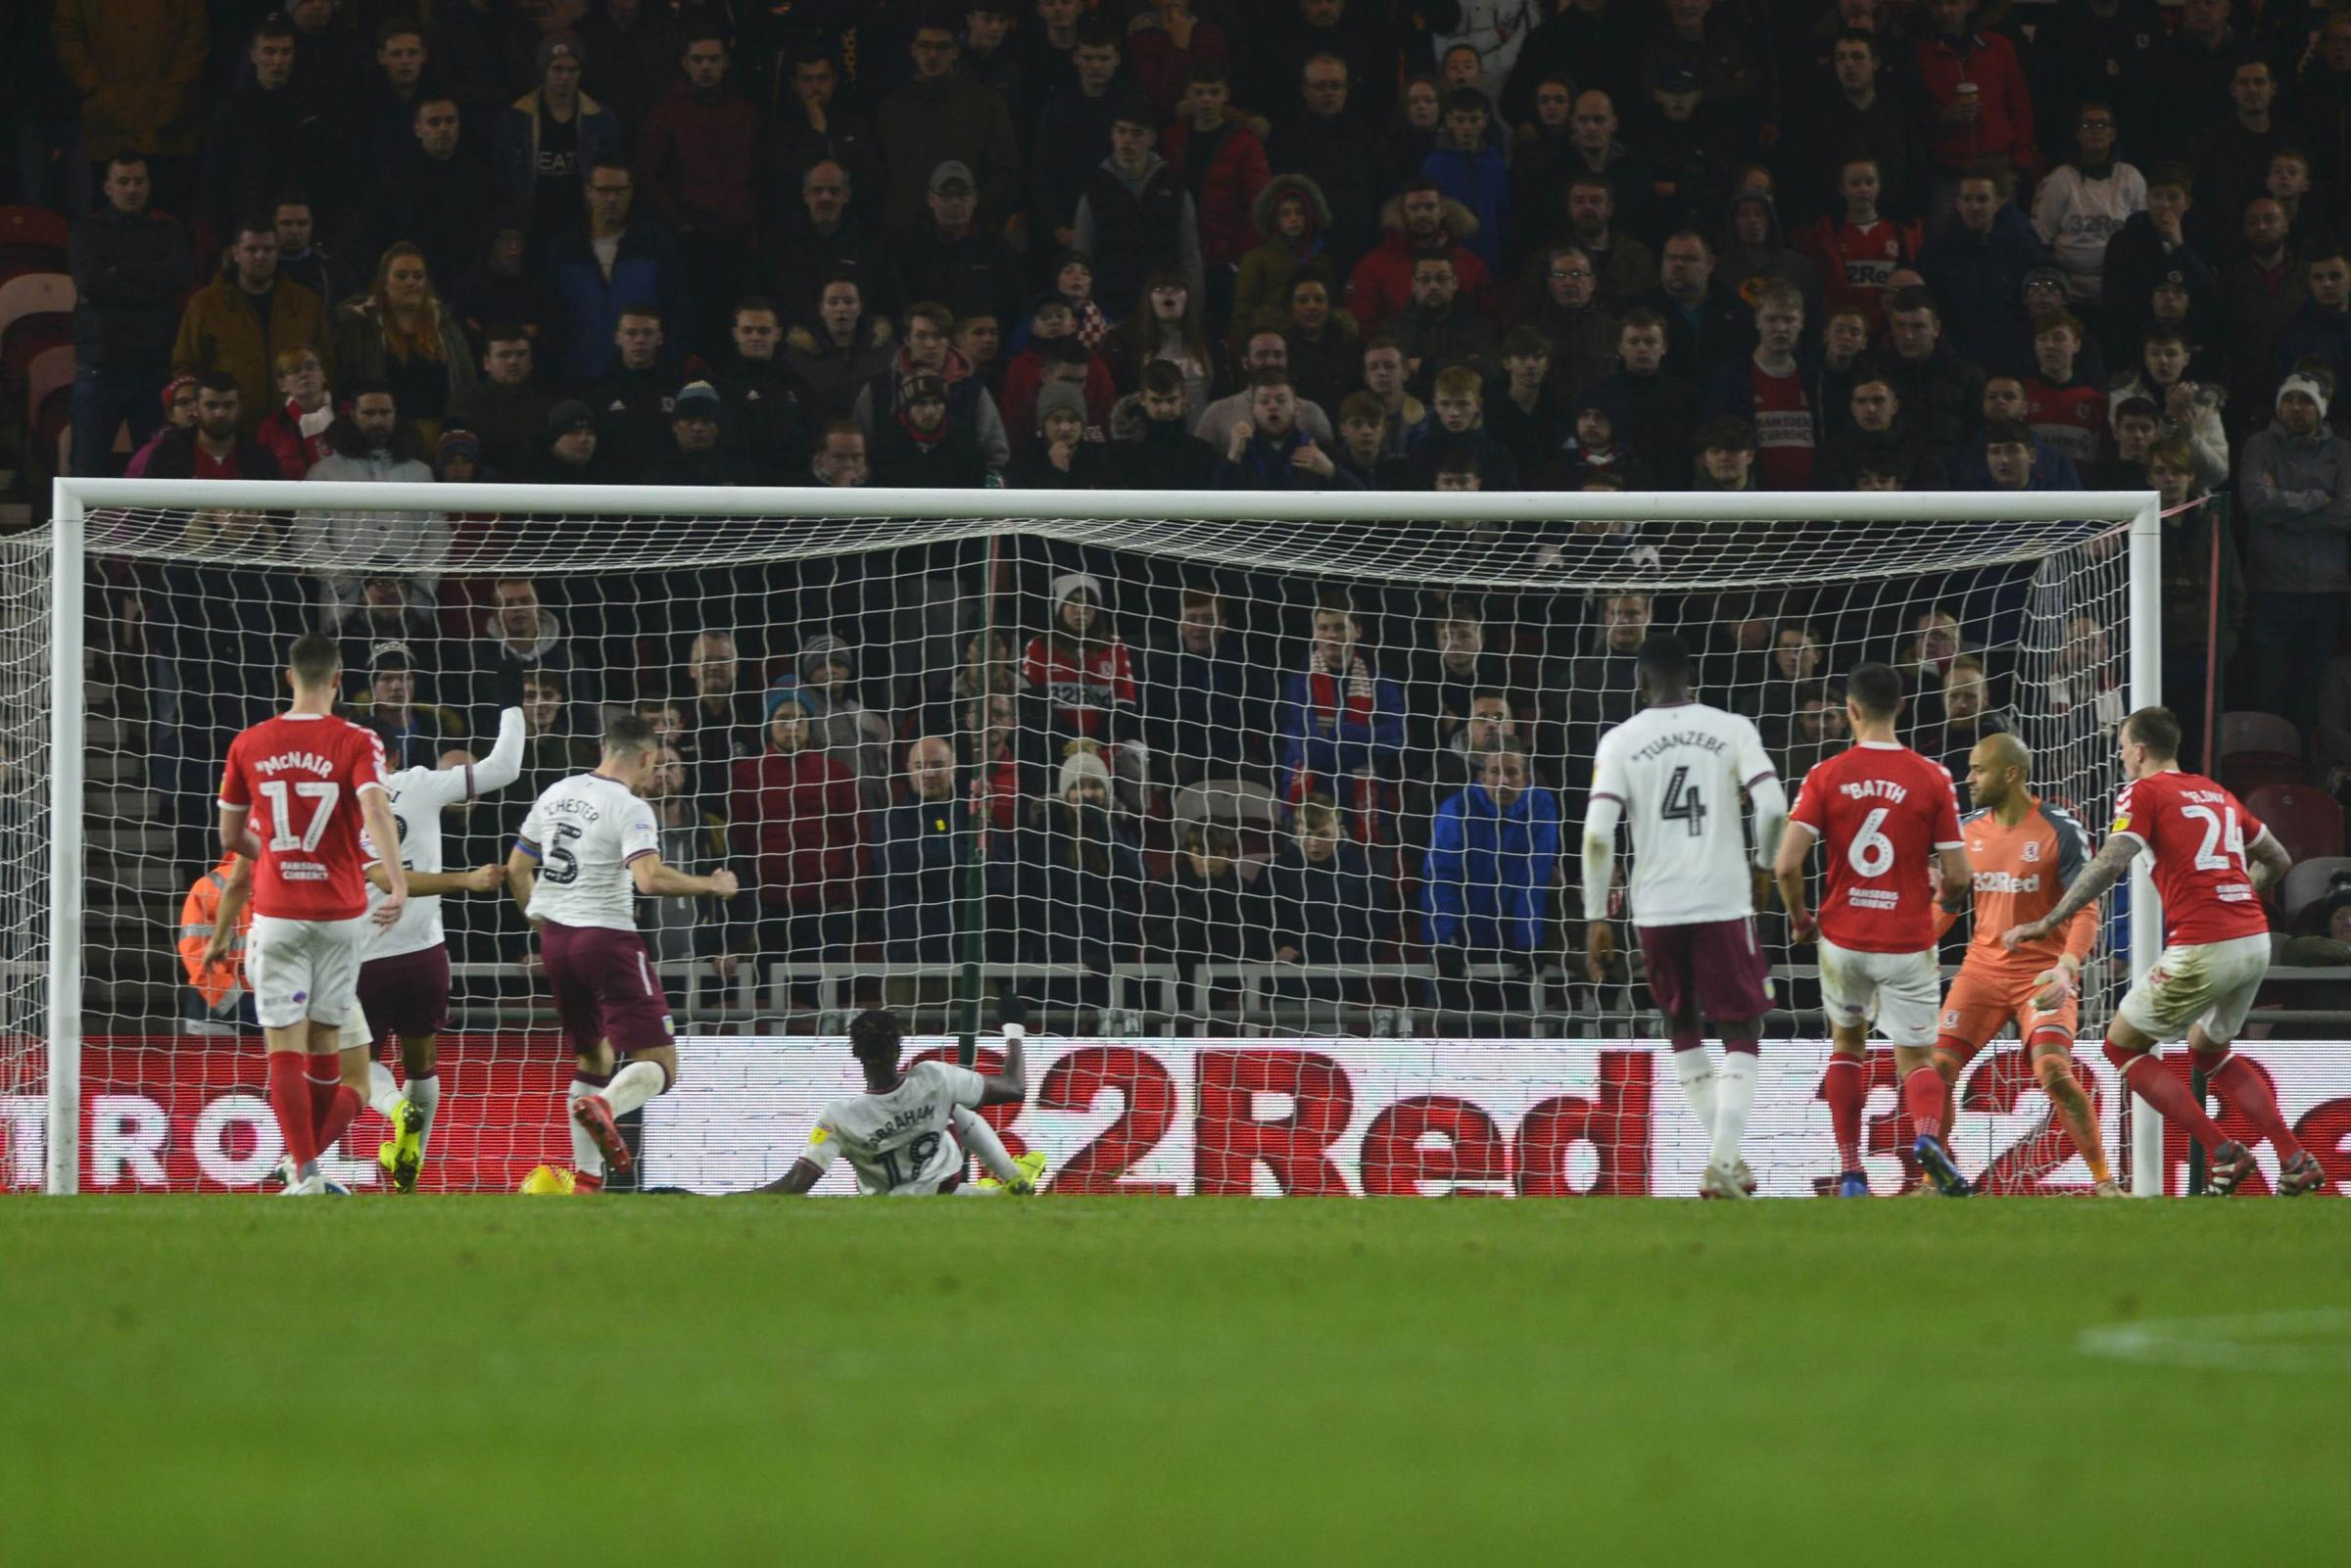 'Let's focus on games rather than January sales' says Boro's Downing